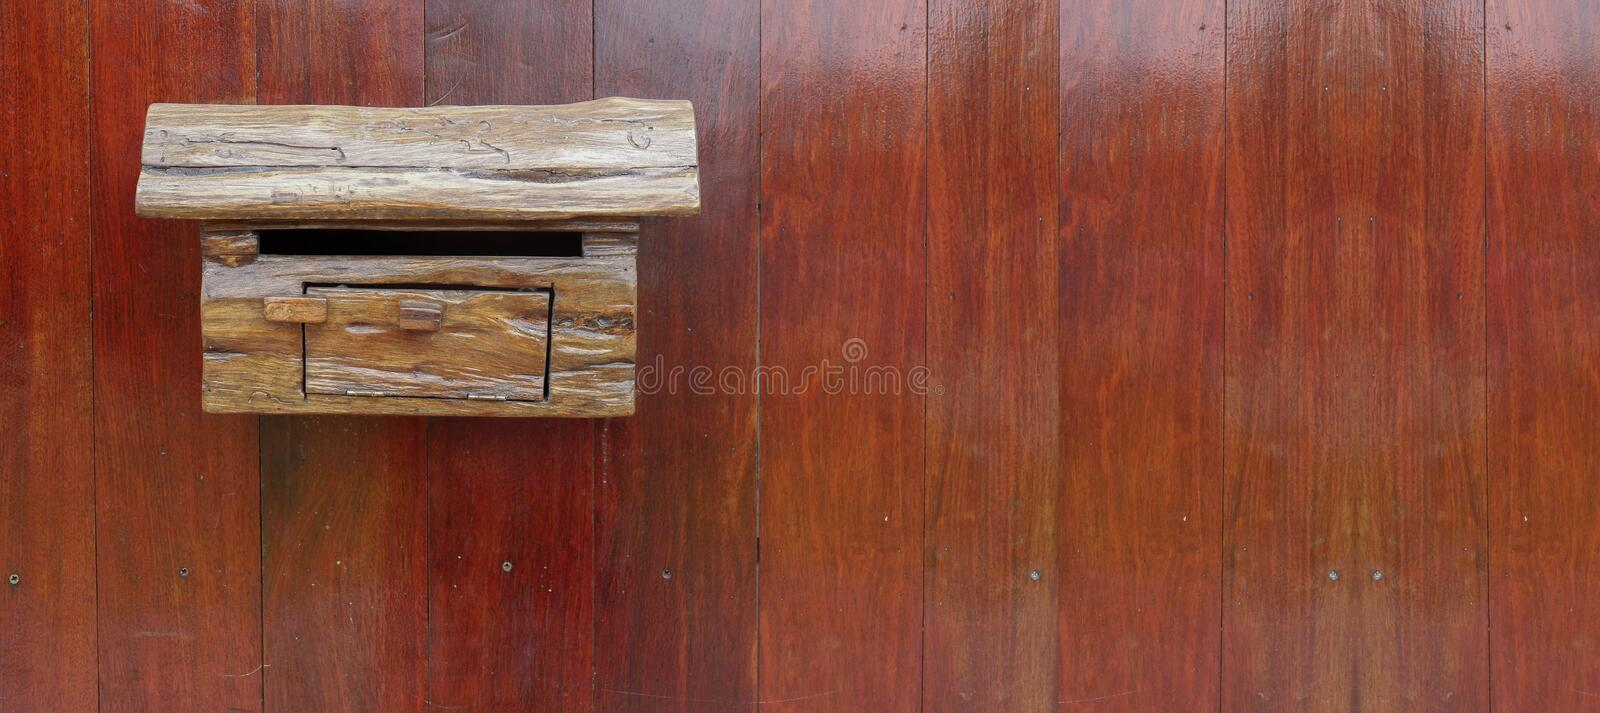 Front view wooden mailbox on wooden wall background,copy space royalty free stock photos